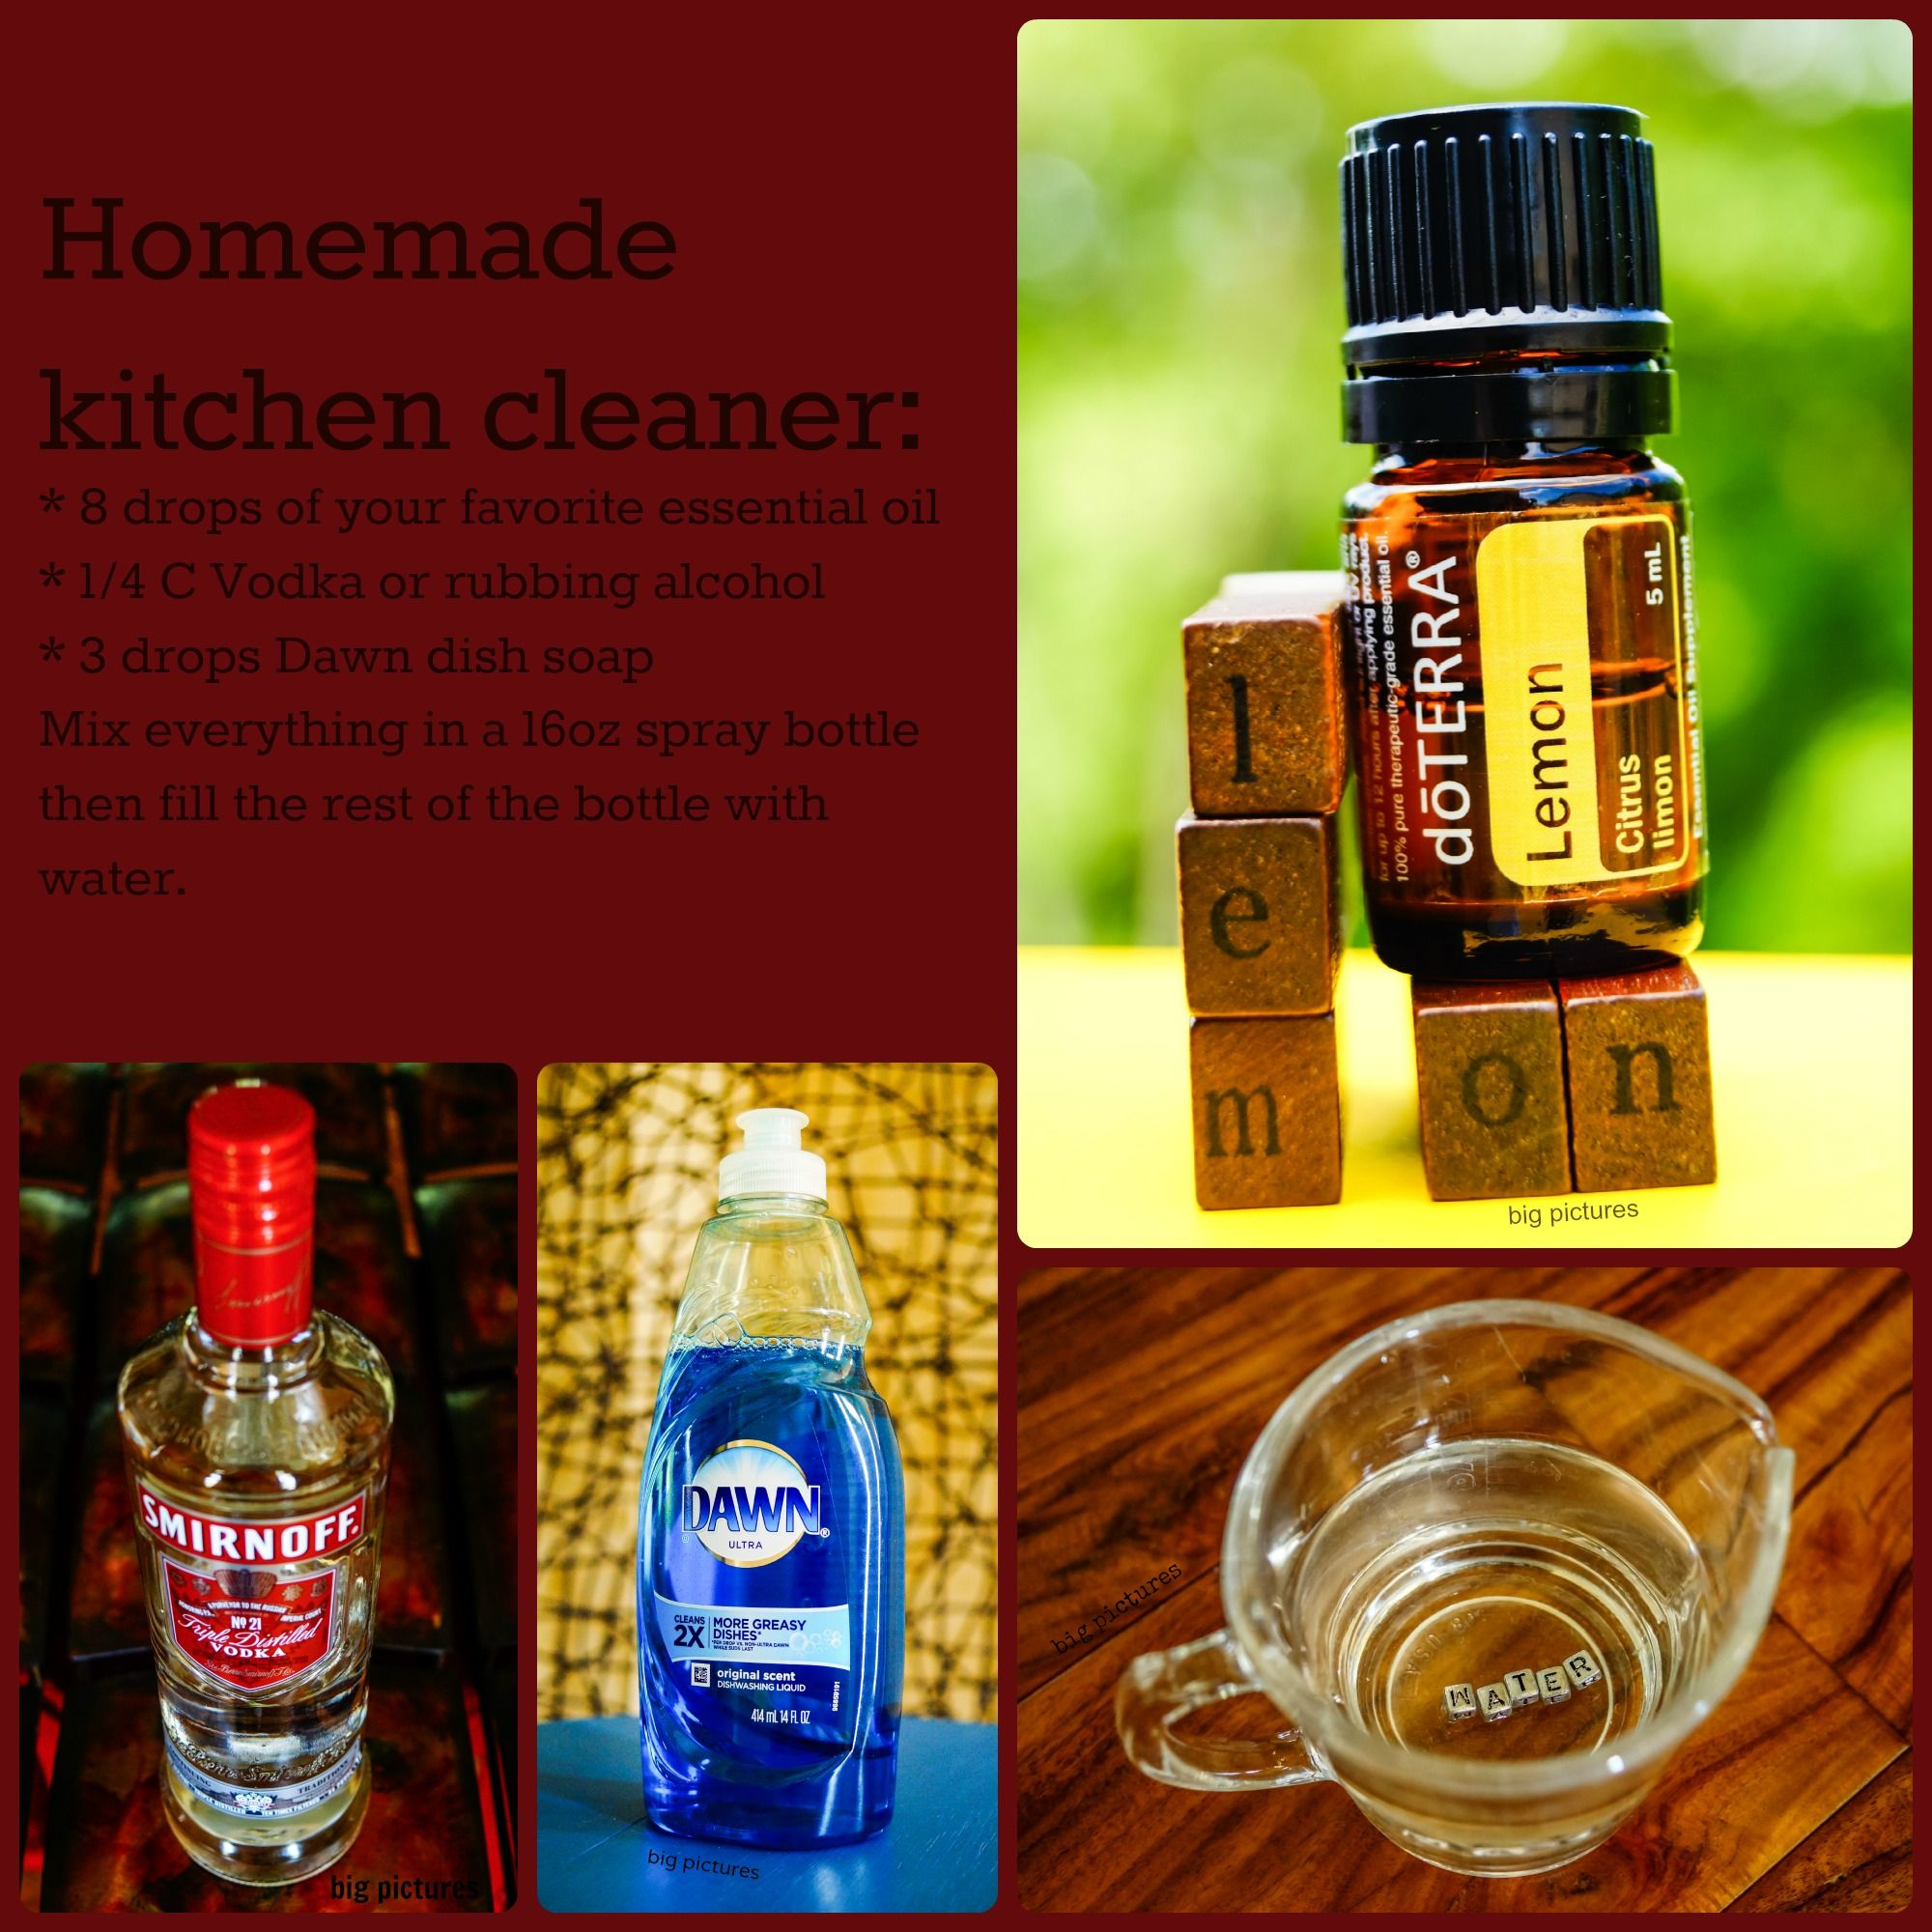 Homemade kitchen cleaner recipe * 8 drops of your